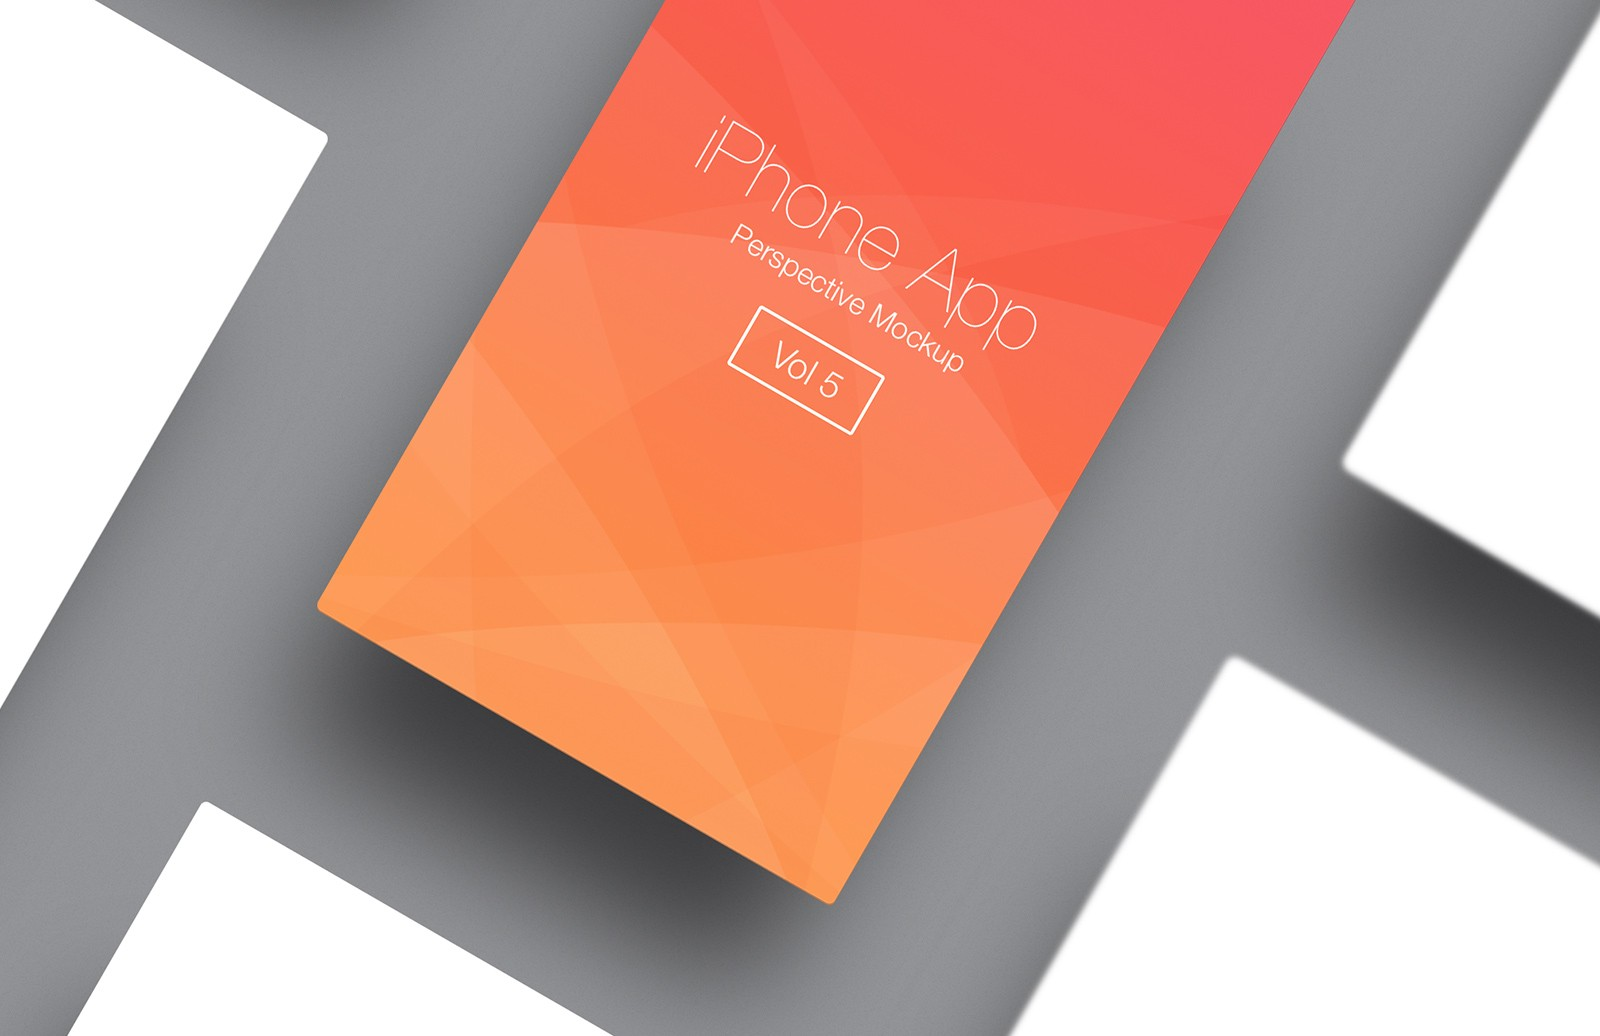 I Phone  App  Perspective  Mockup  Vol 5  Preview 3